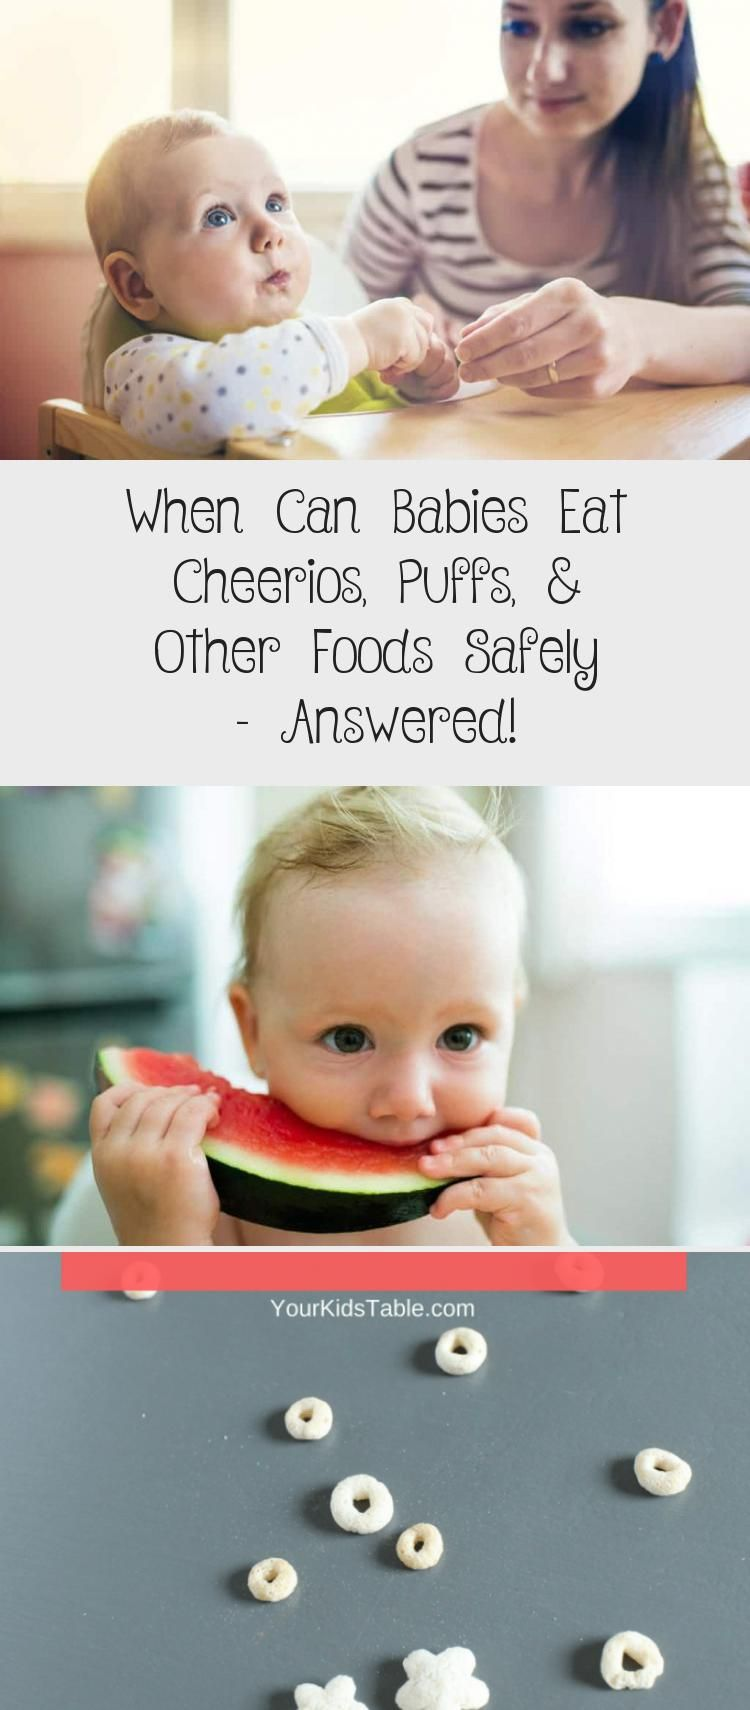 When Can Babies Eat Puffs : babies, puffs, Babies, Cheerios,, Puffs,, Other, Foods, Safely, Answered!, Eating,, Recipes,, Homemade